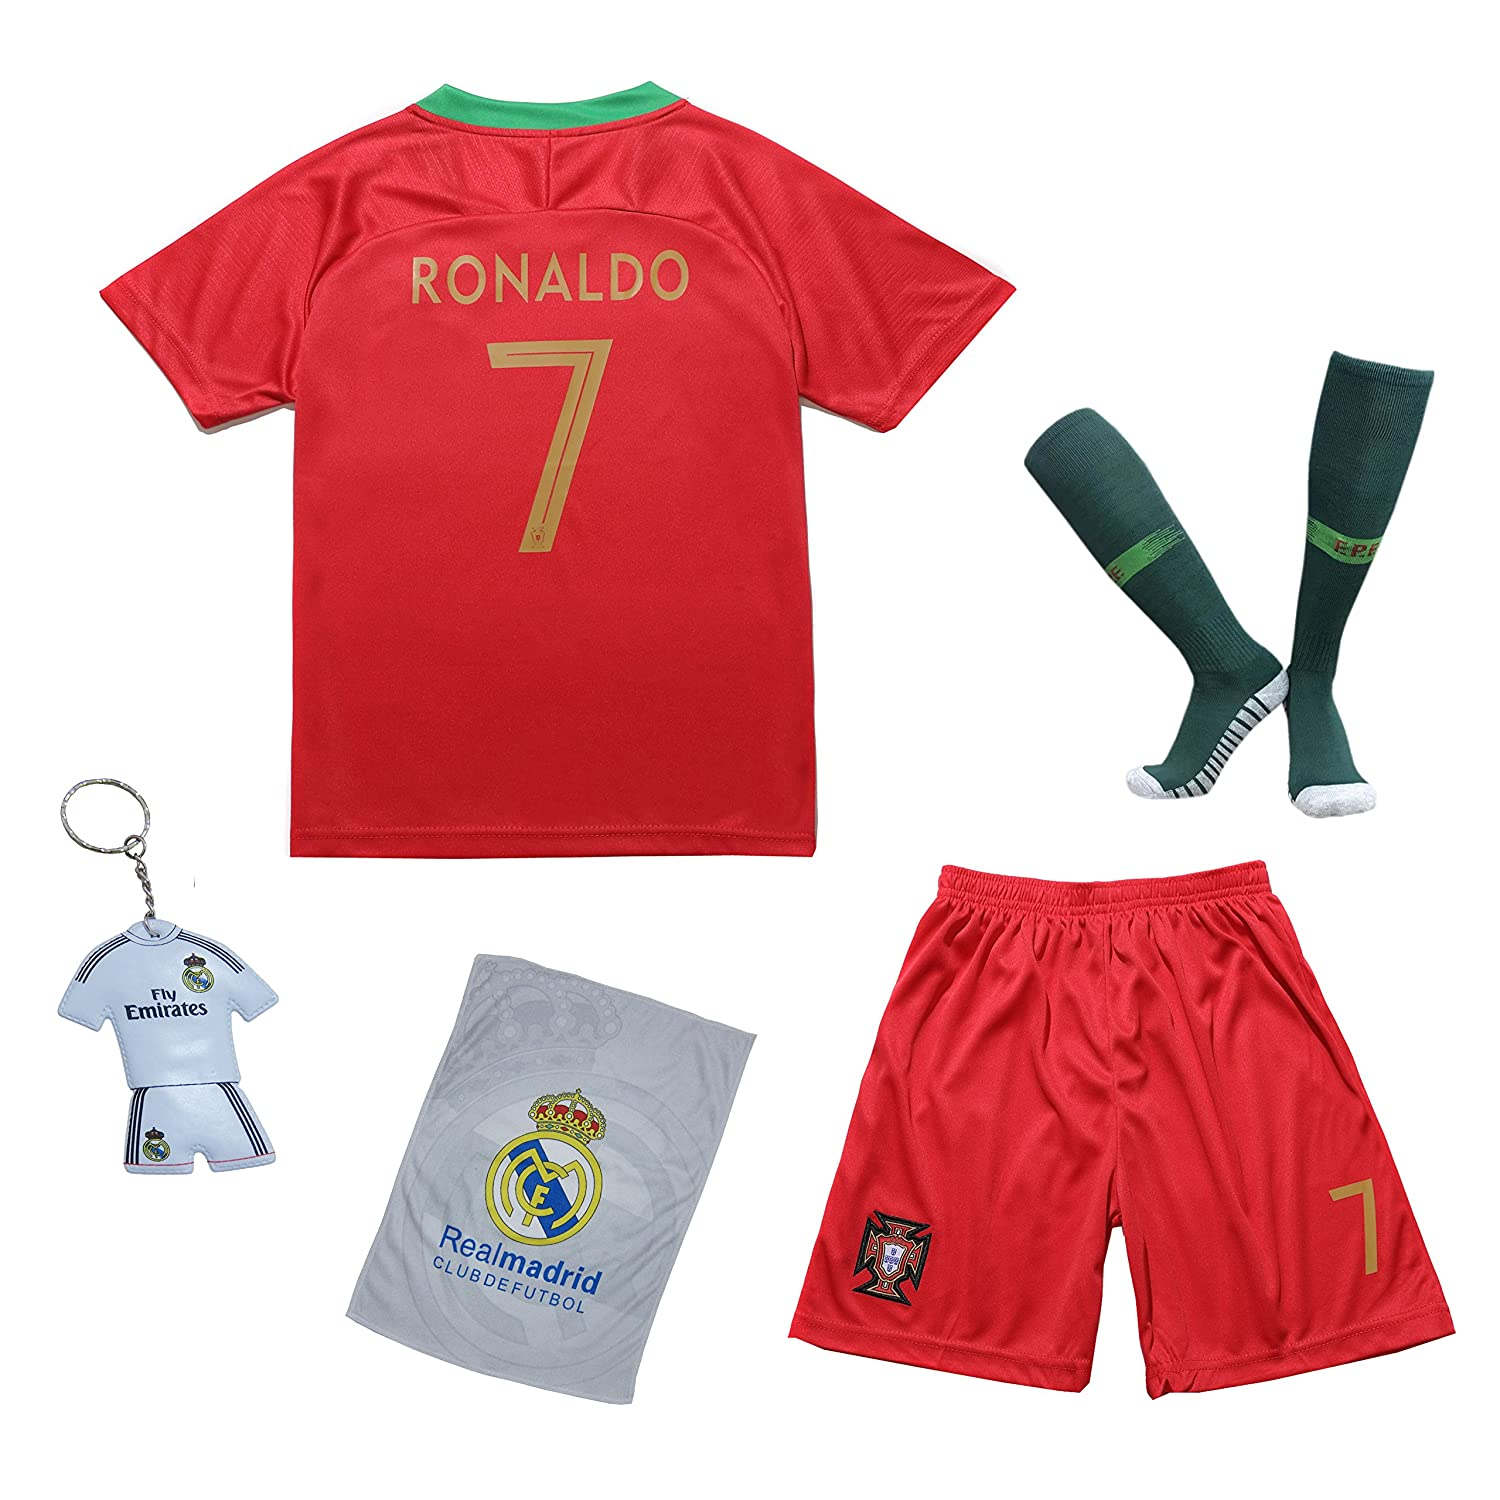 timeless design ea516 690a6 KID BOX 2018 Portugal Cristiano Ronaldo #7 Home Red Kids Soccer Football  Jersey Gift Set Youth Sizes